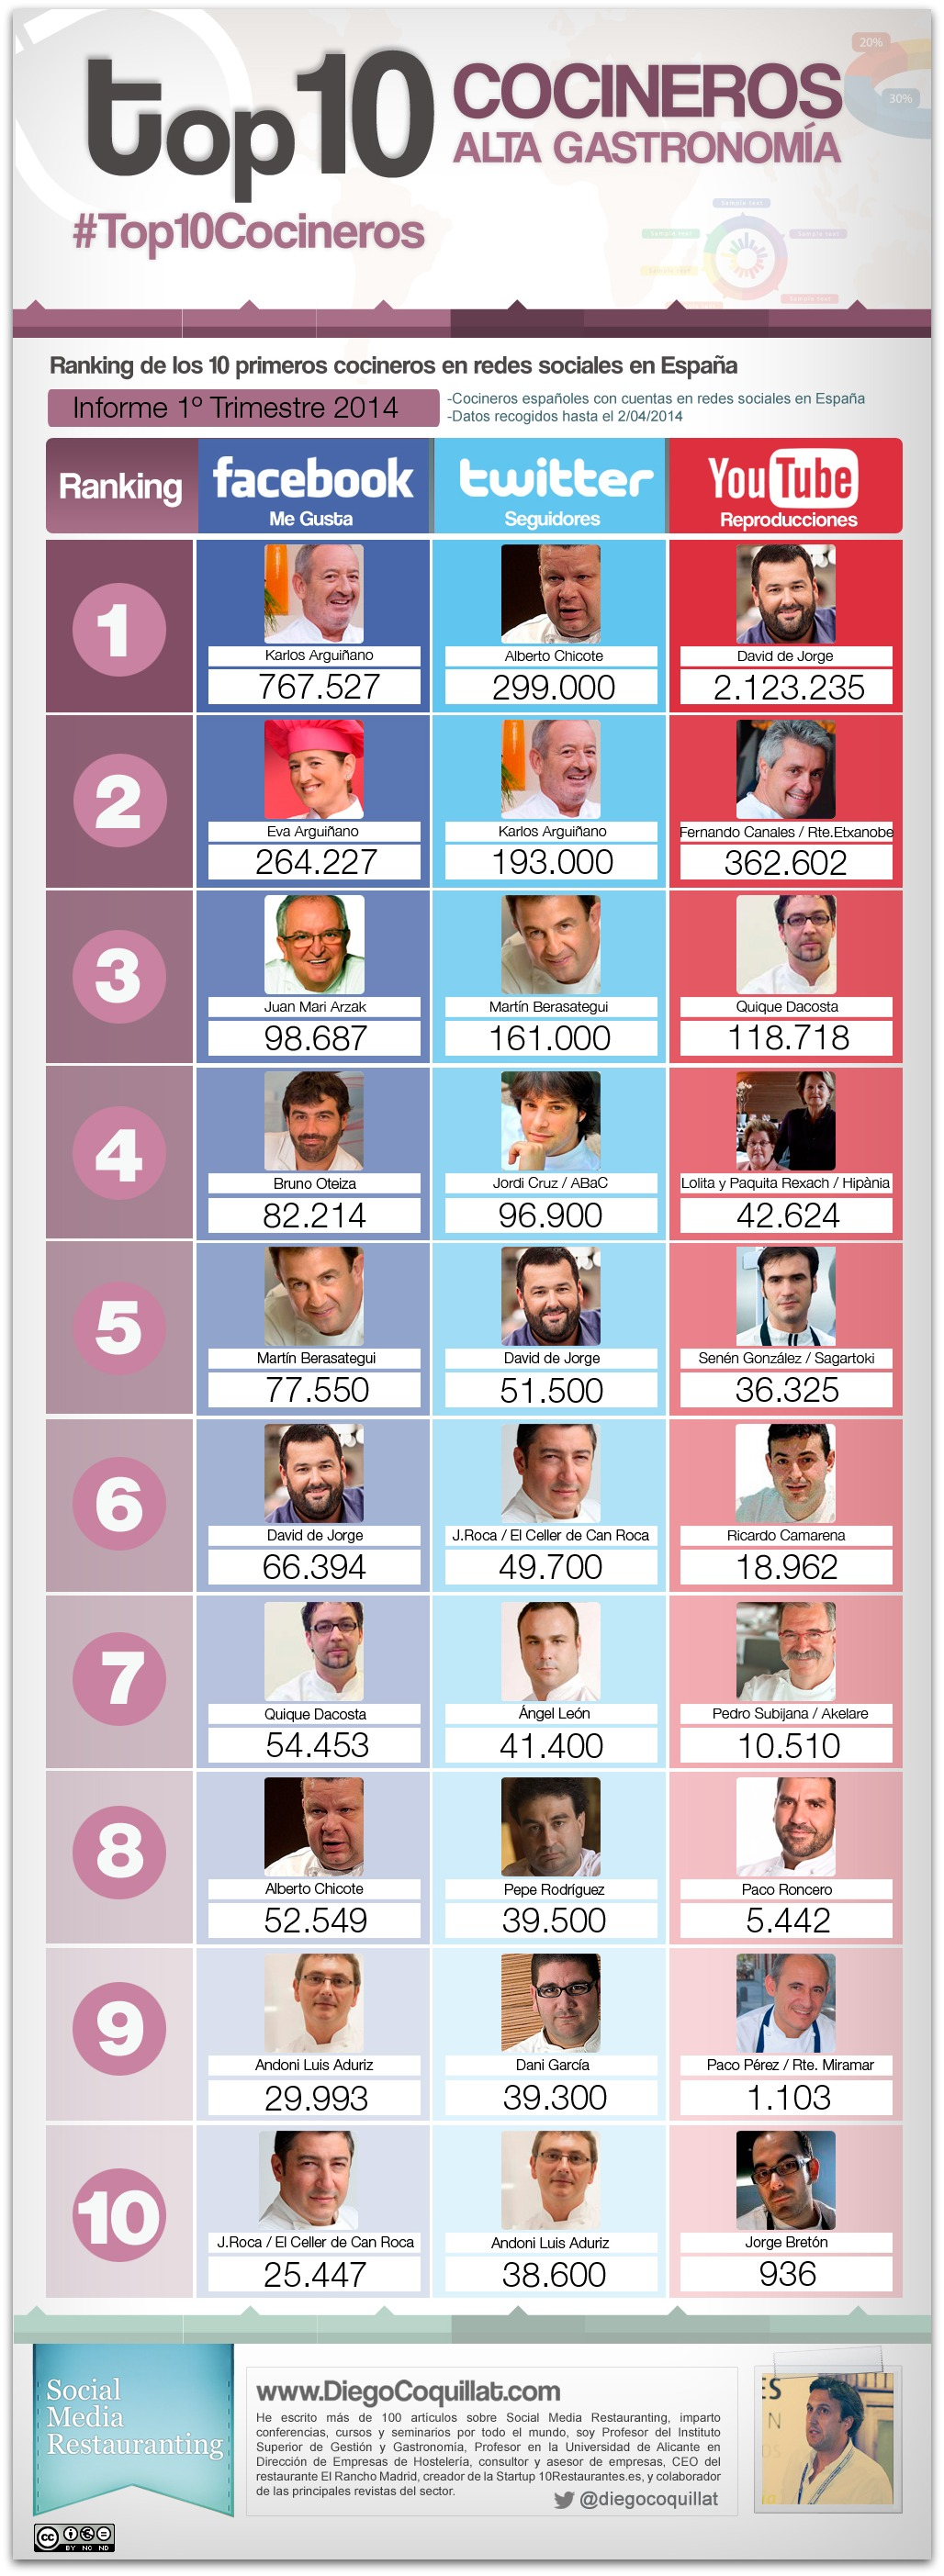 The 10 best chefs in social networks in Spain 2014